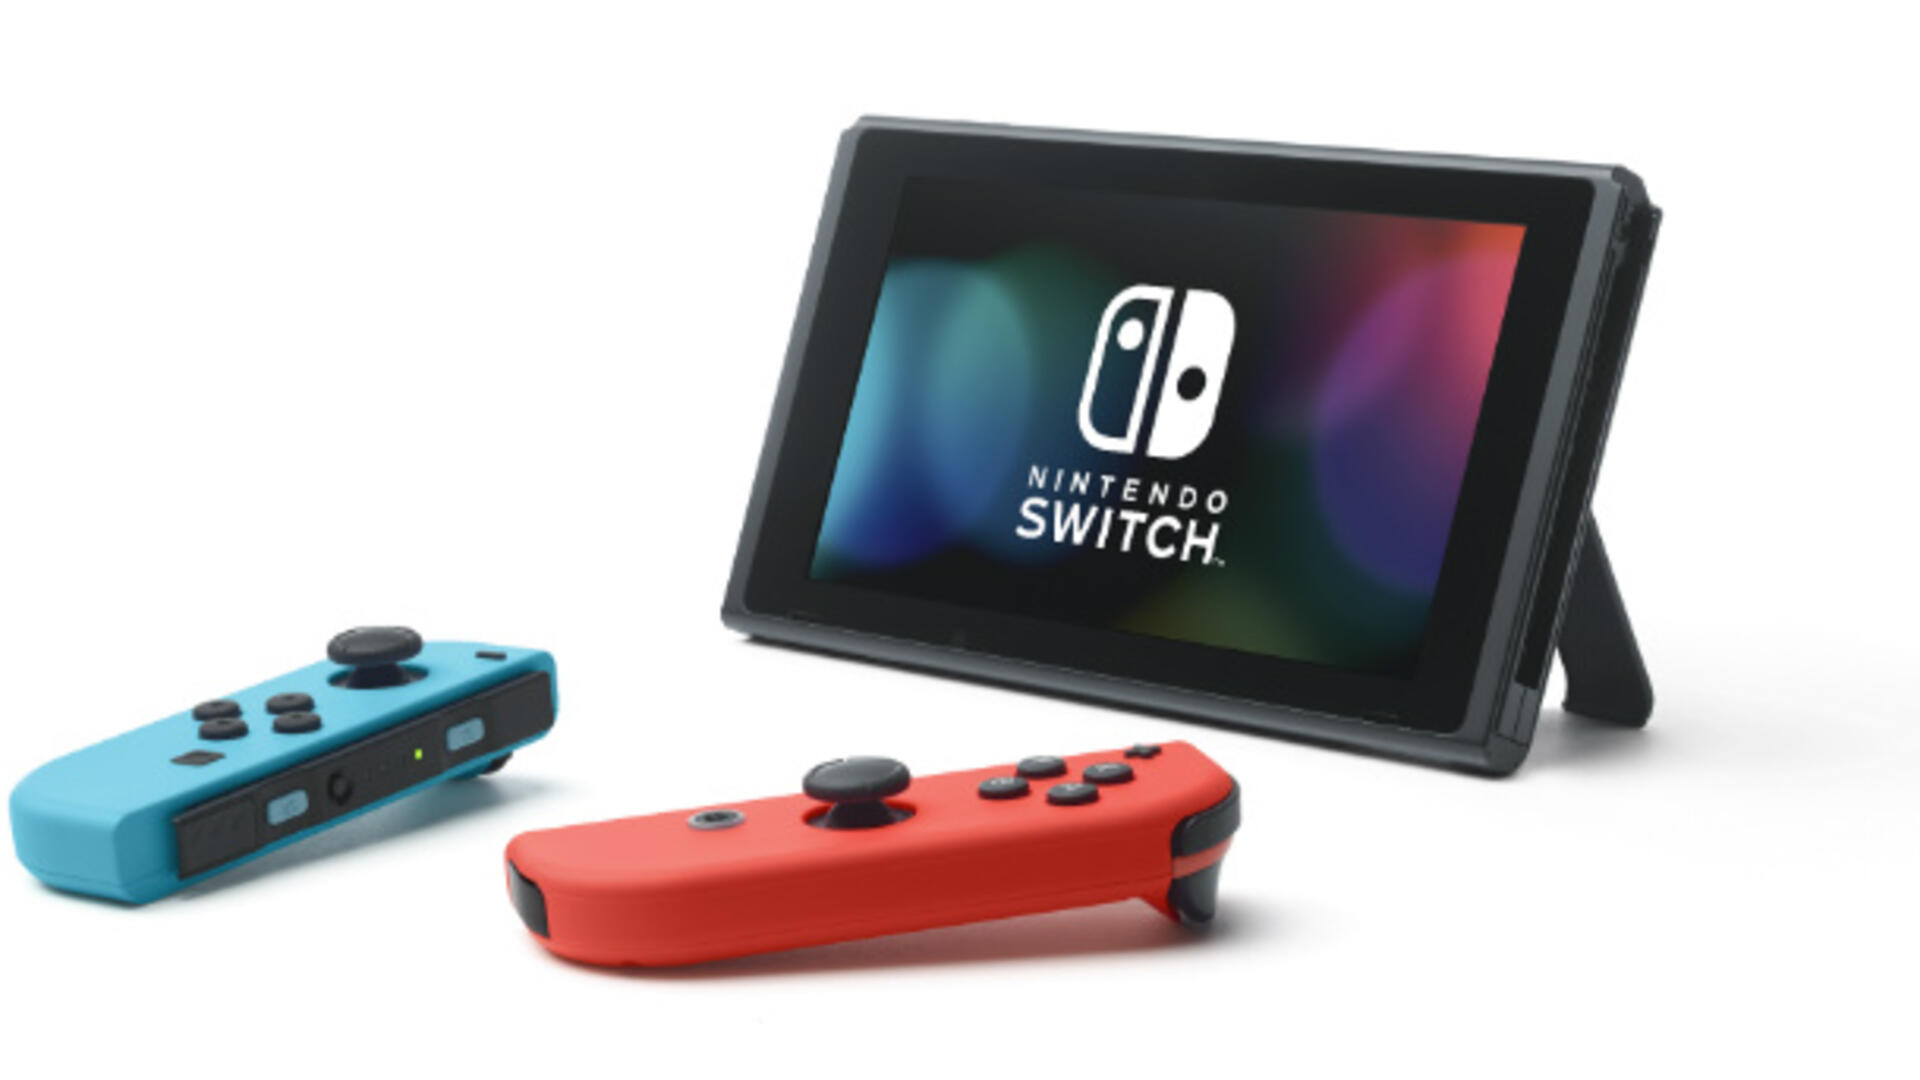 Nintendo Switch Uses Friend Codes To Add Friends | USgamer